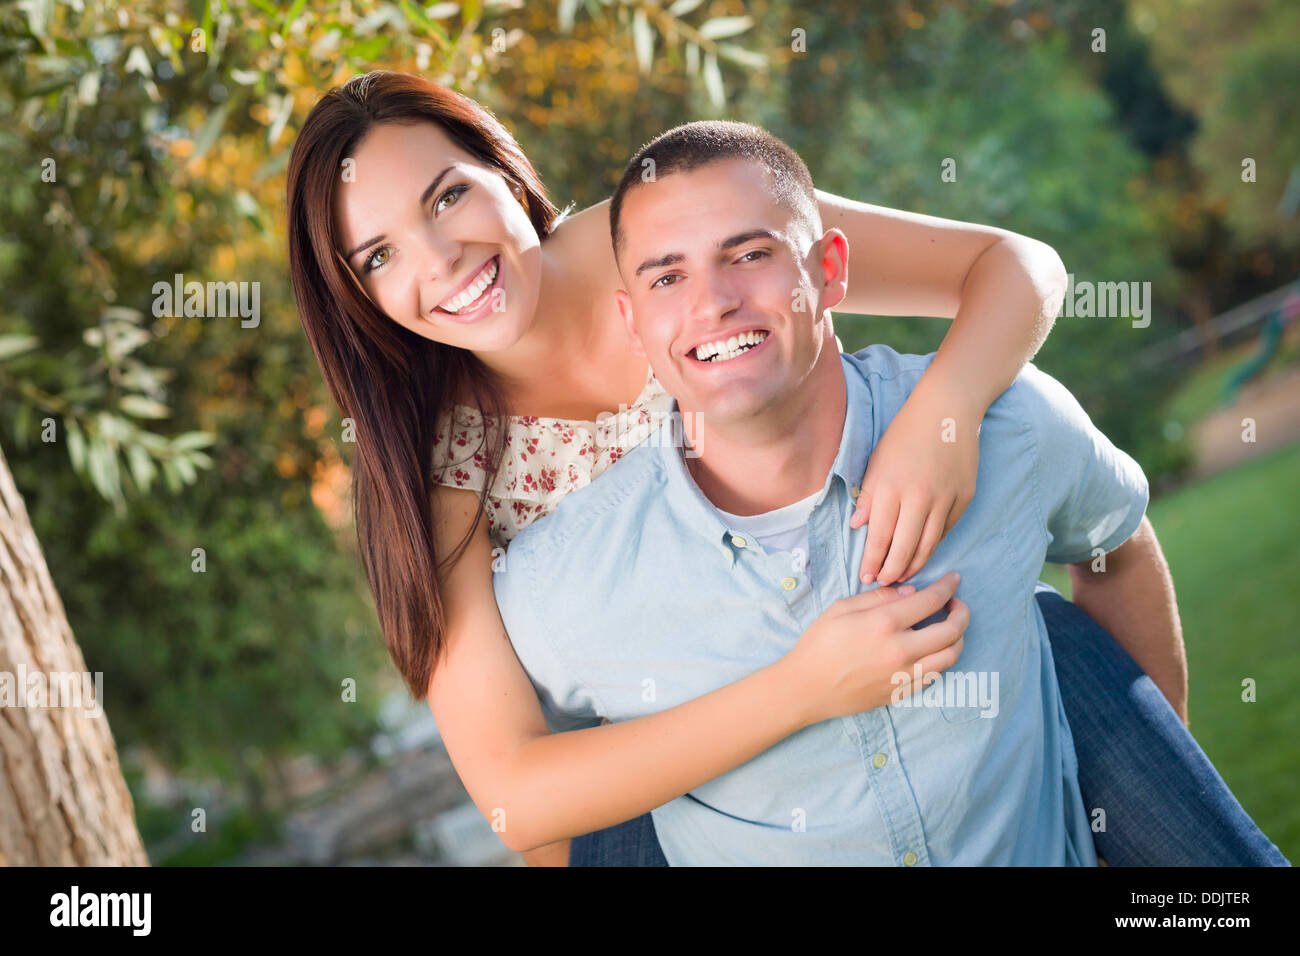 Happy Mixed Race Romantic Couple Piggyback Portrait in the Park. - Stock Image